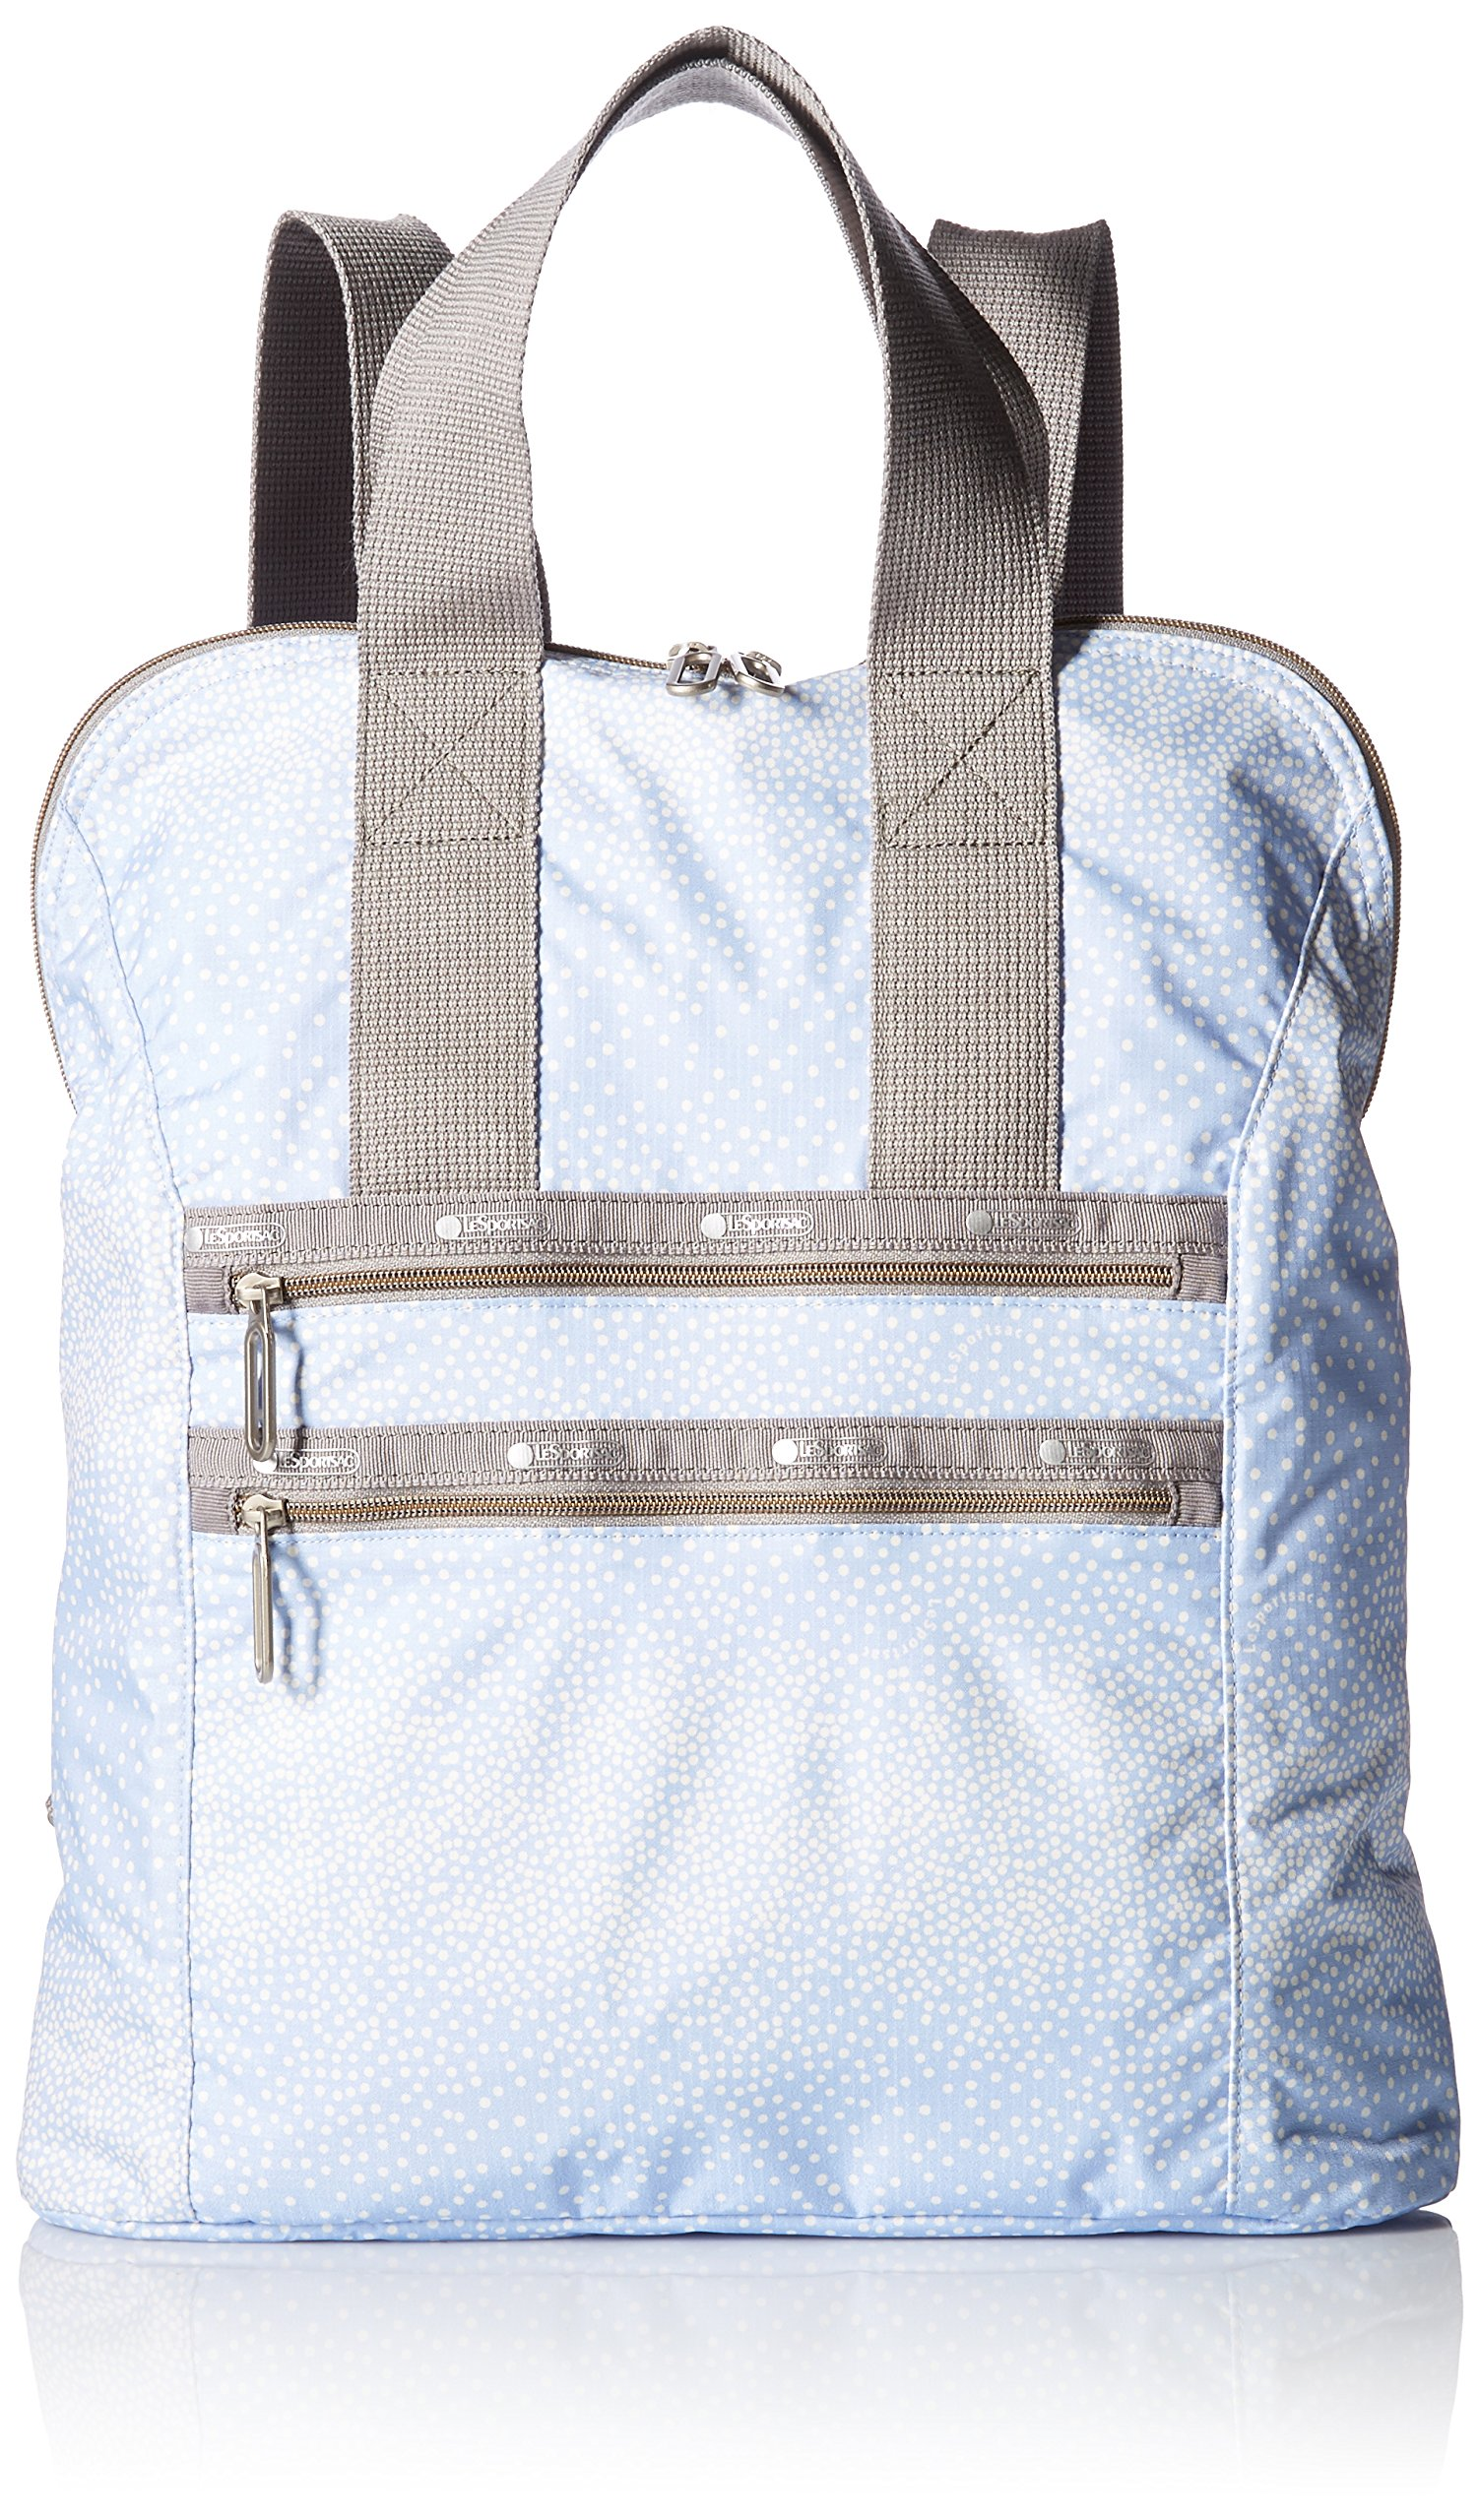 LeSportsac Women's Essential Commuter Backpack, Sprinkle Dots Sky C by LeSportsac